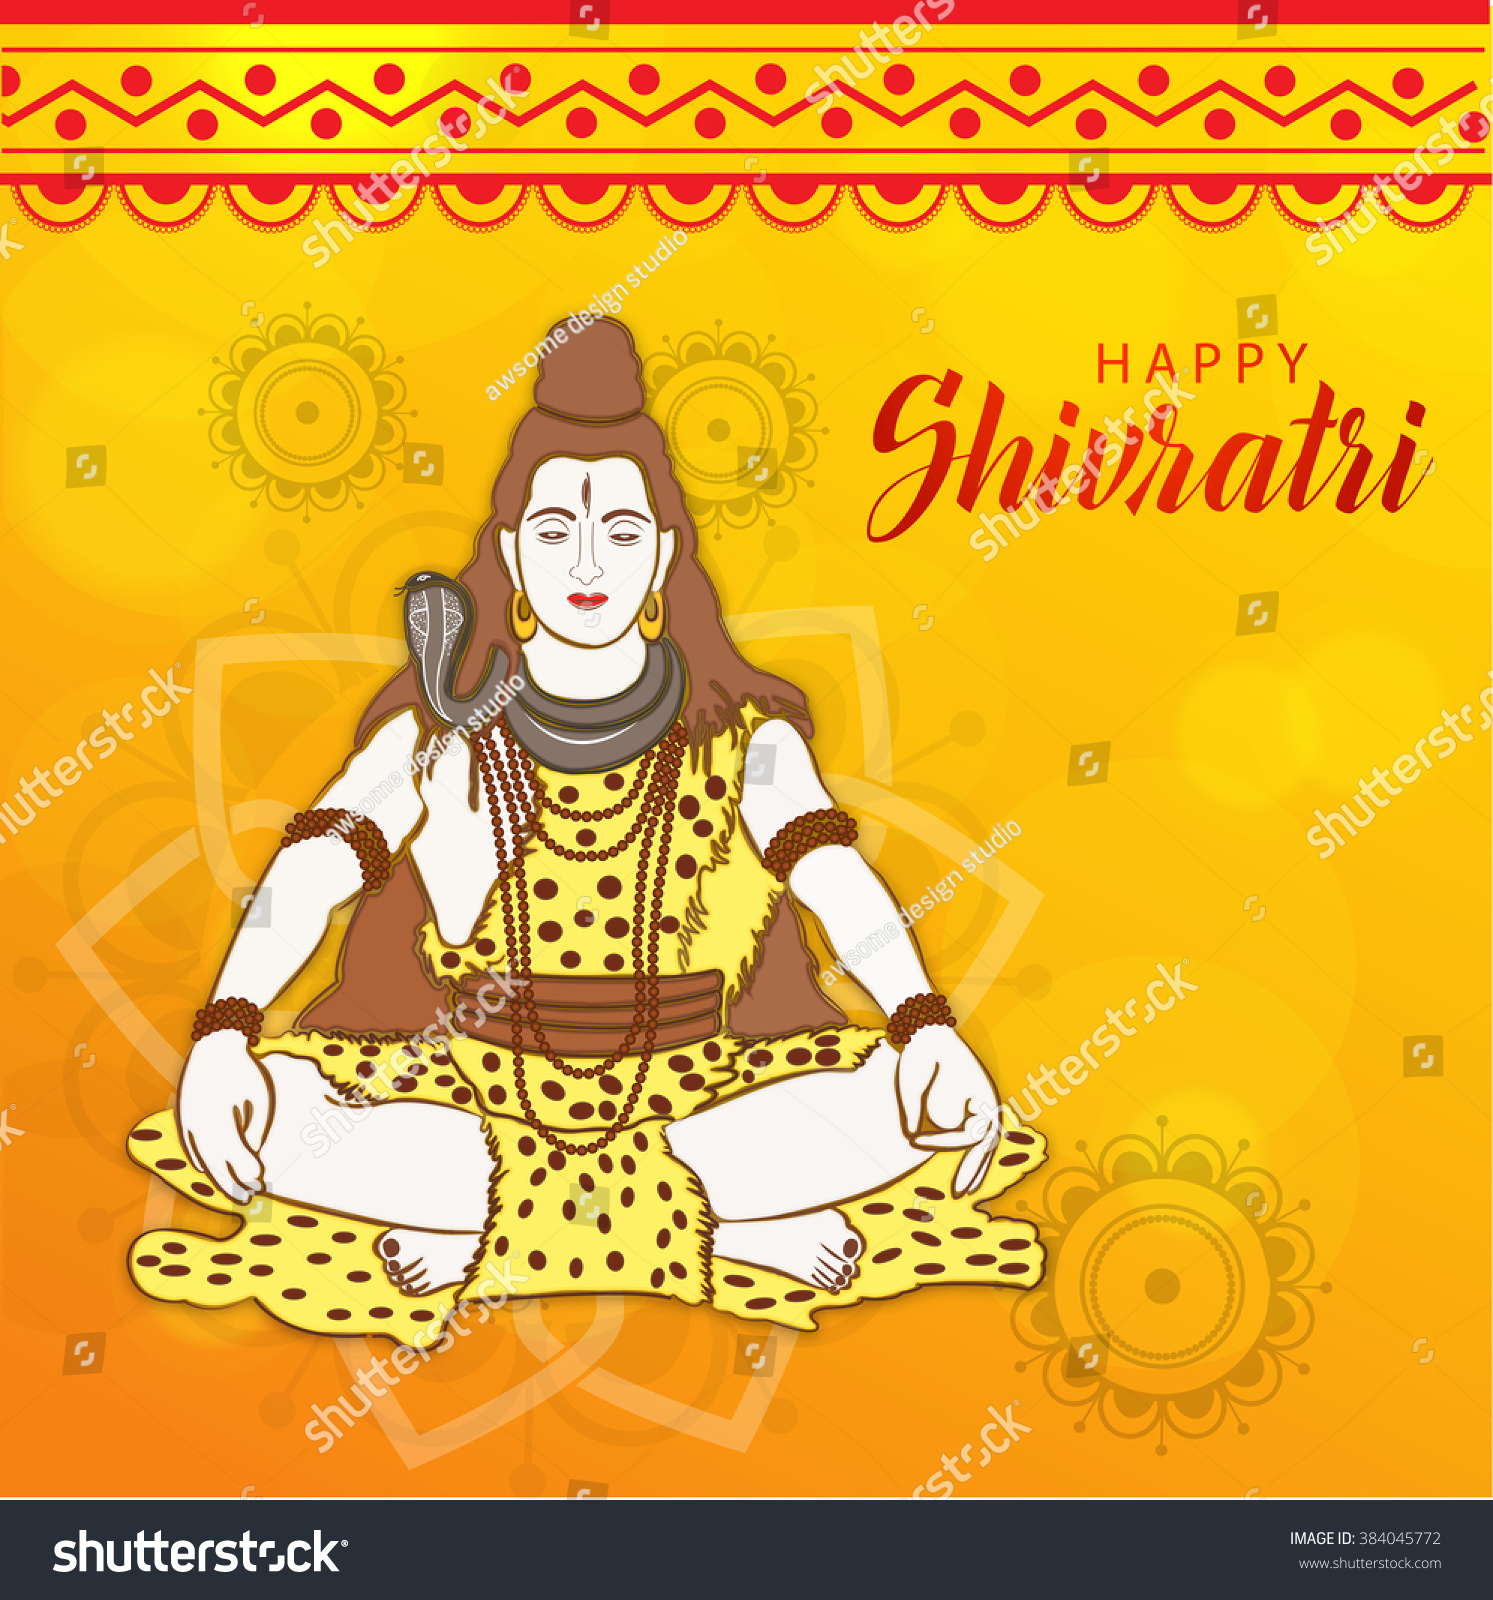 Vector Illustration of Shivratri background wit trishul for Hindu festival celebrated of the God Shiva